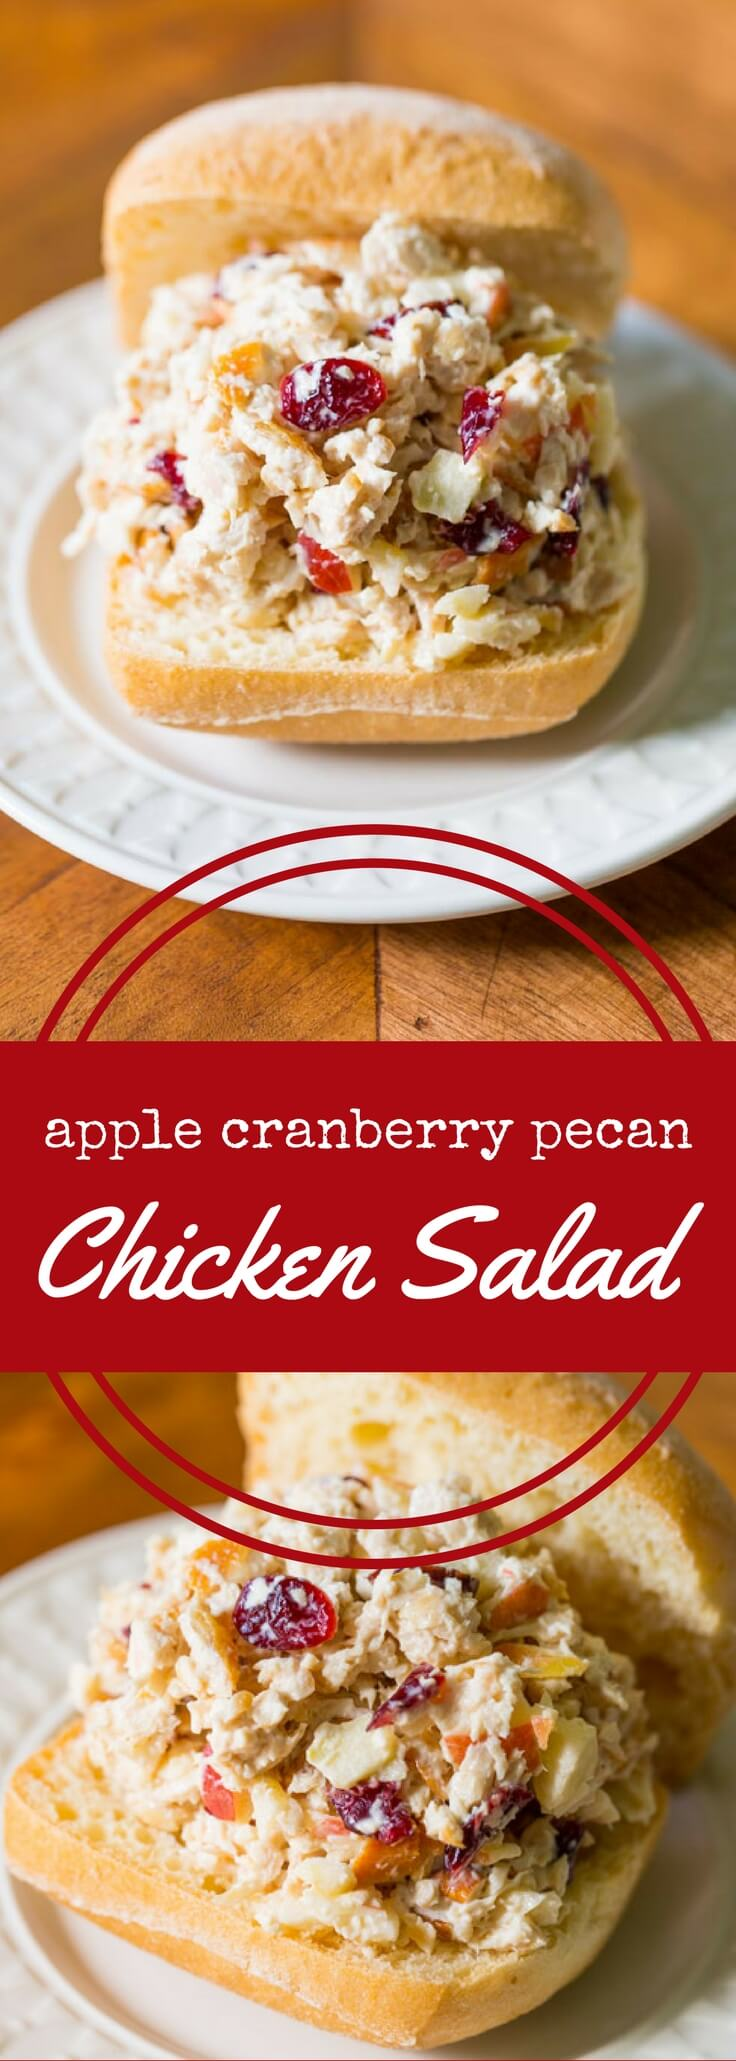 Classic chicken salad with apples, cranberries, and pecans, in mayonnaise. Simple ingredients and easy to follow instructions. Serve on sandwiches or salad!